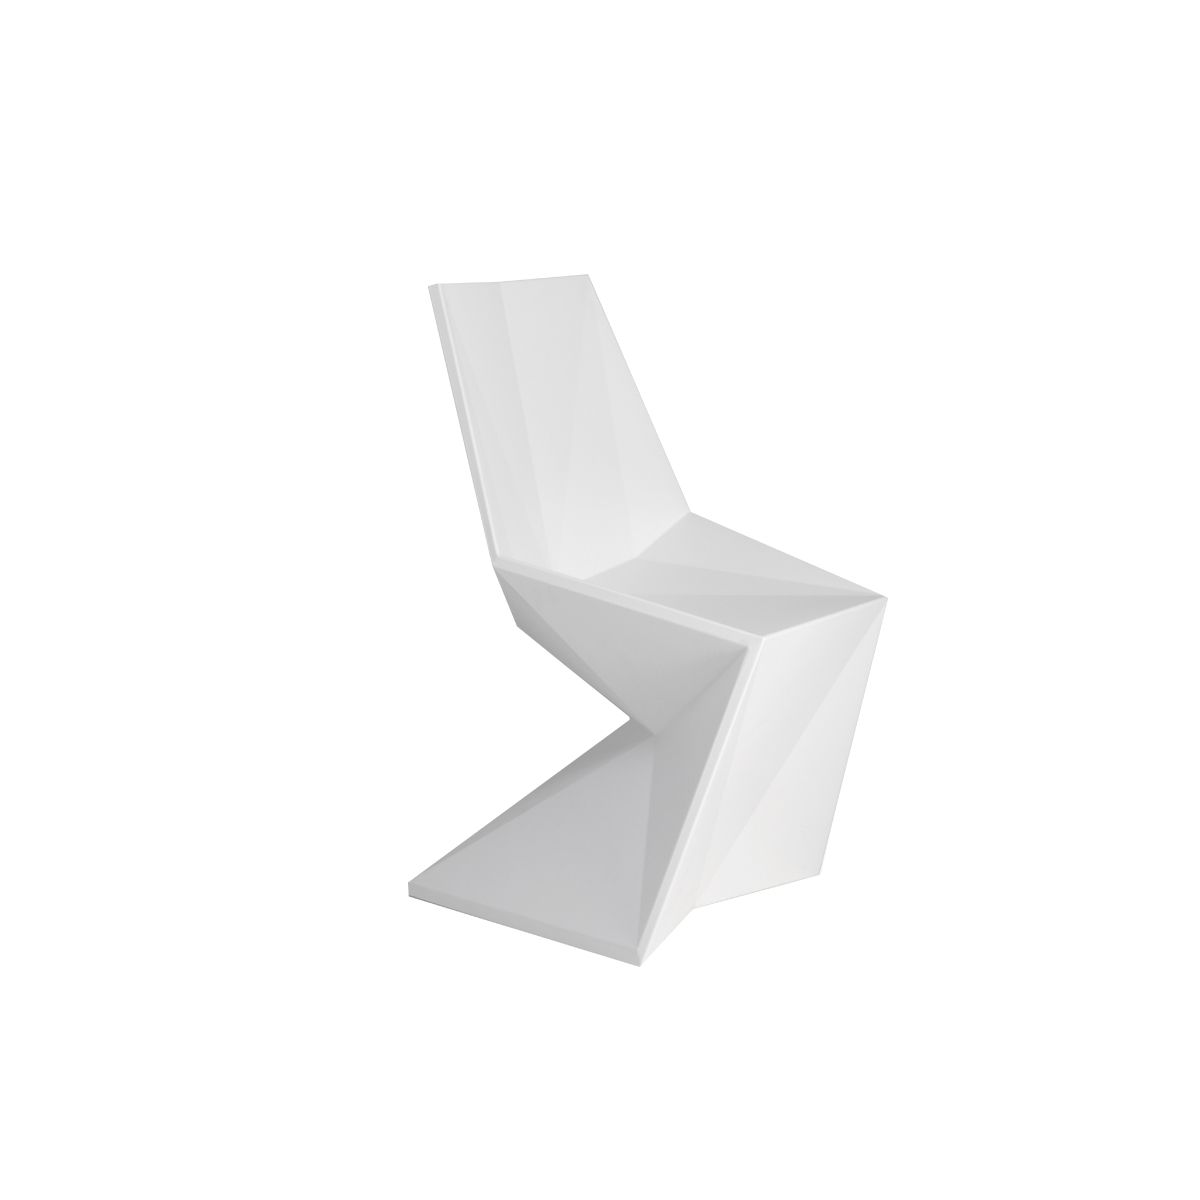 Chaise salle a manger design led vertex vondom zendart design - Chaise exterieur design ...